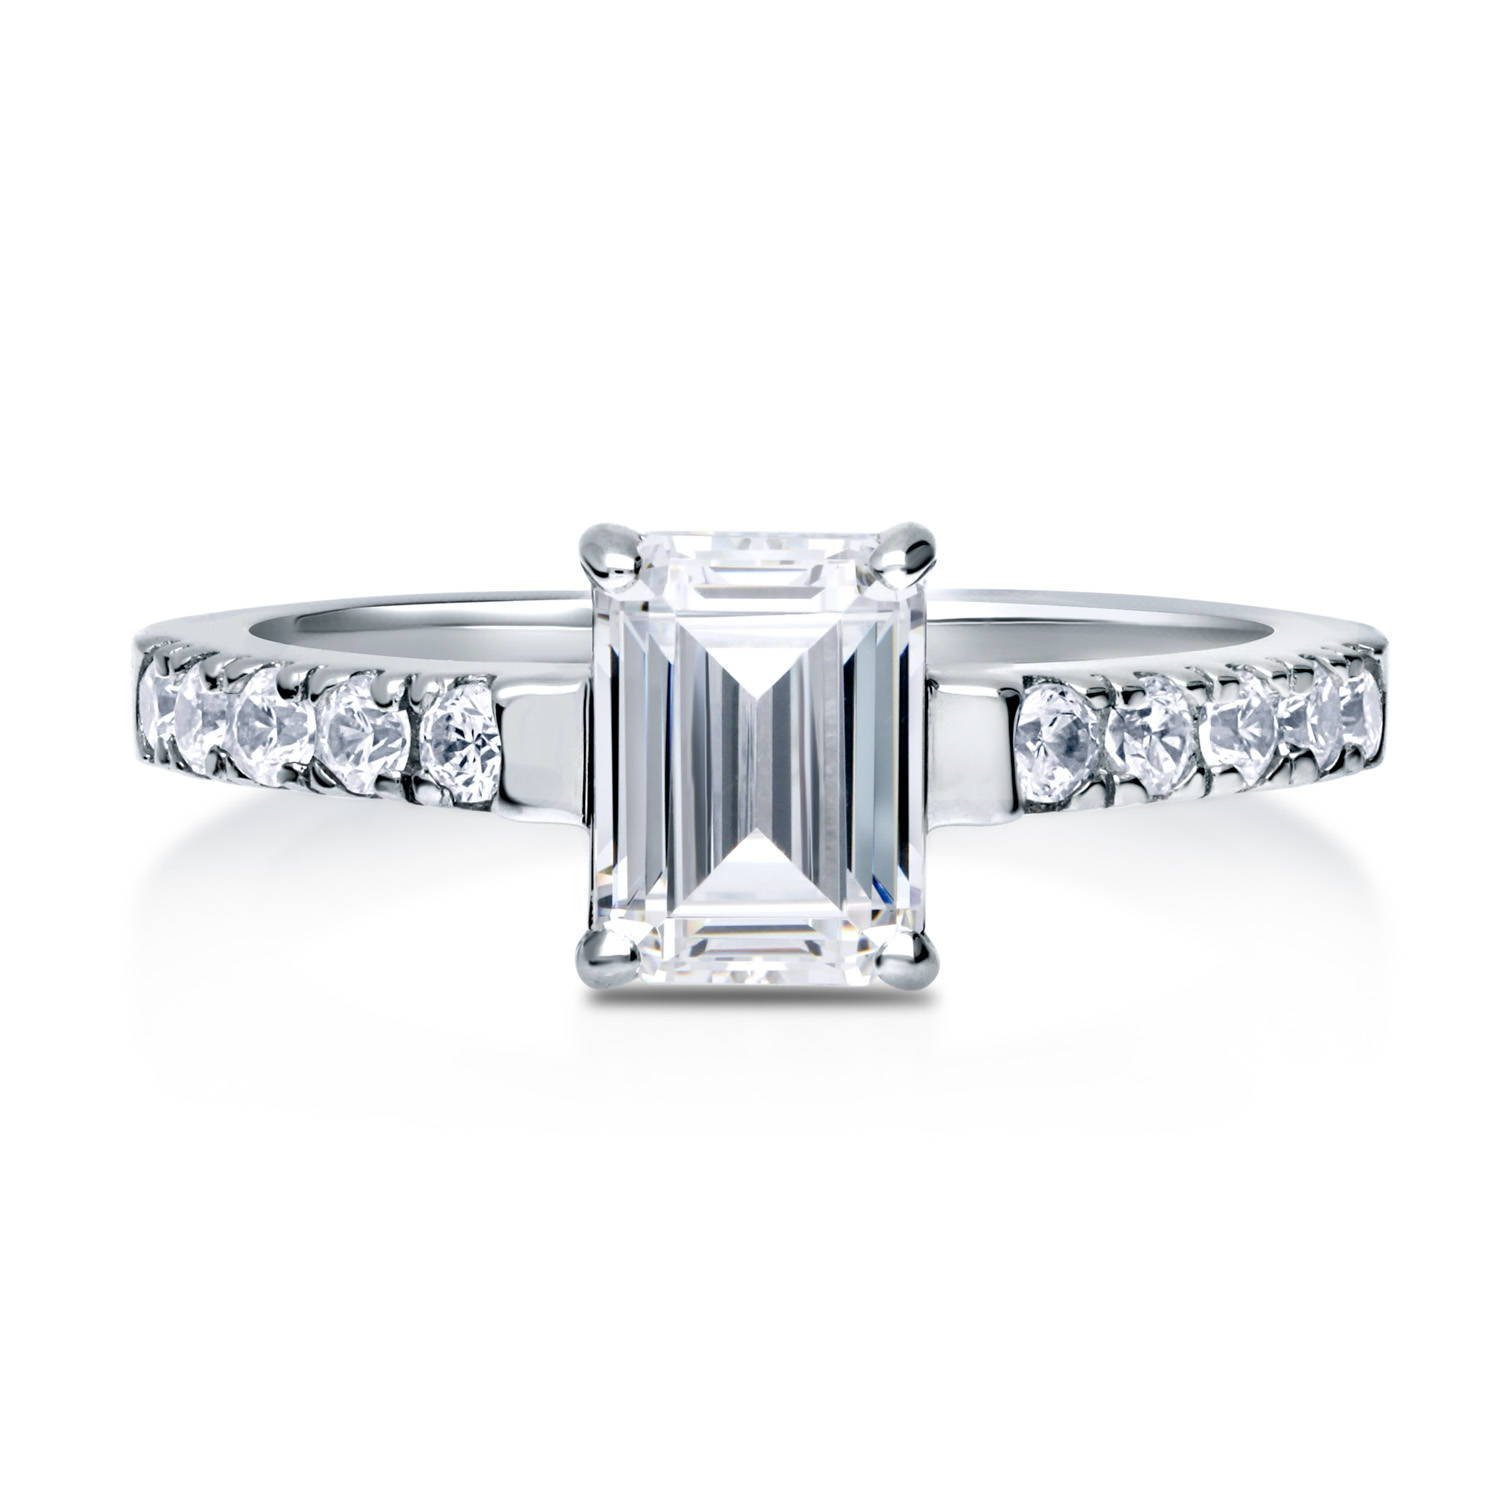 BERRICLE Rhodium Plated Sterling Silver Emerald Cut Cubic Zirconia CZ Solitaire Promise Engagement Ring 1.5 CTW